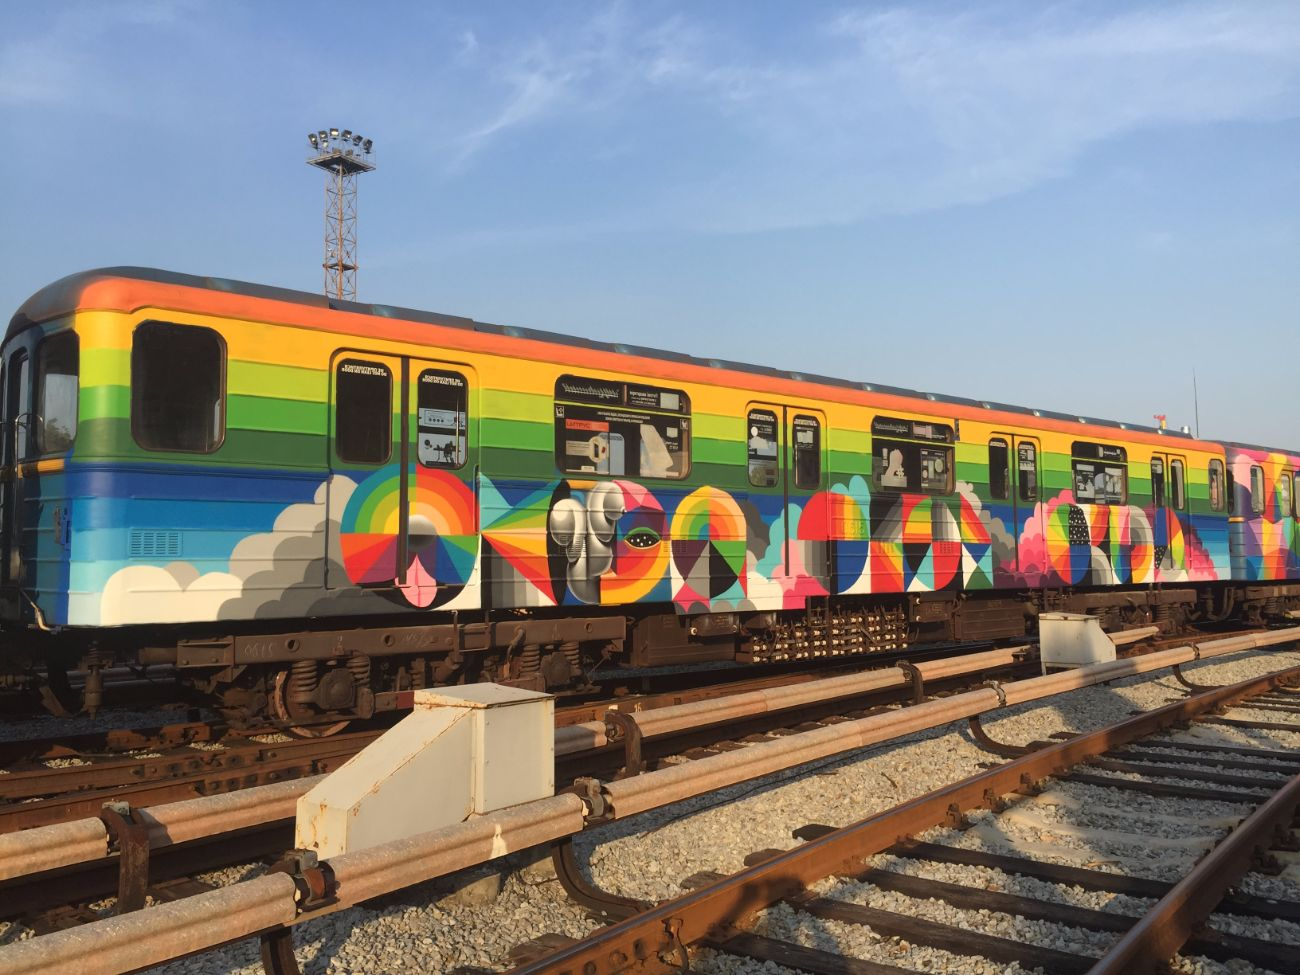 okuda-san-miguels-5-car-train-in-kiev-ukraine-thevandallist-1